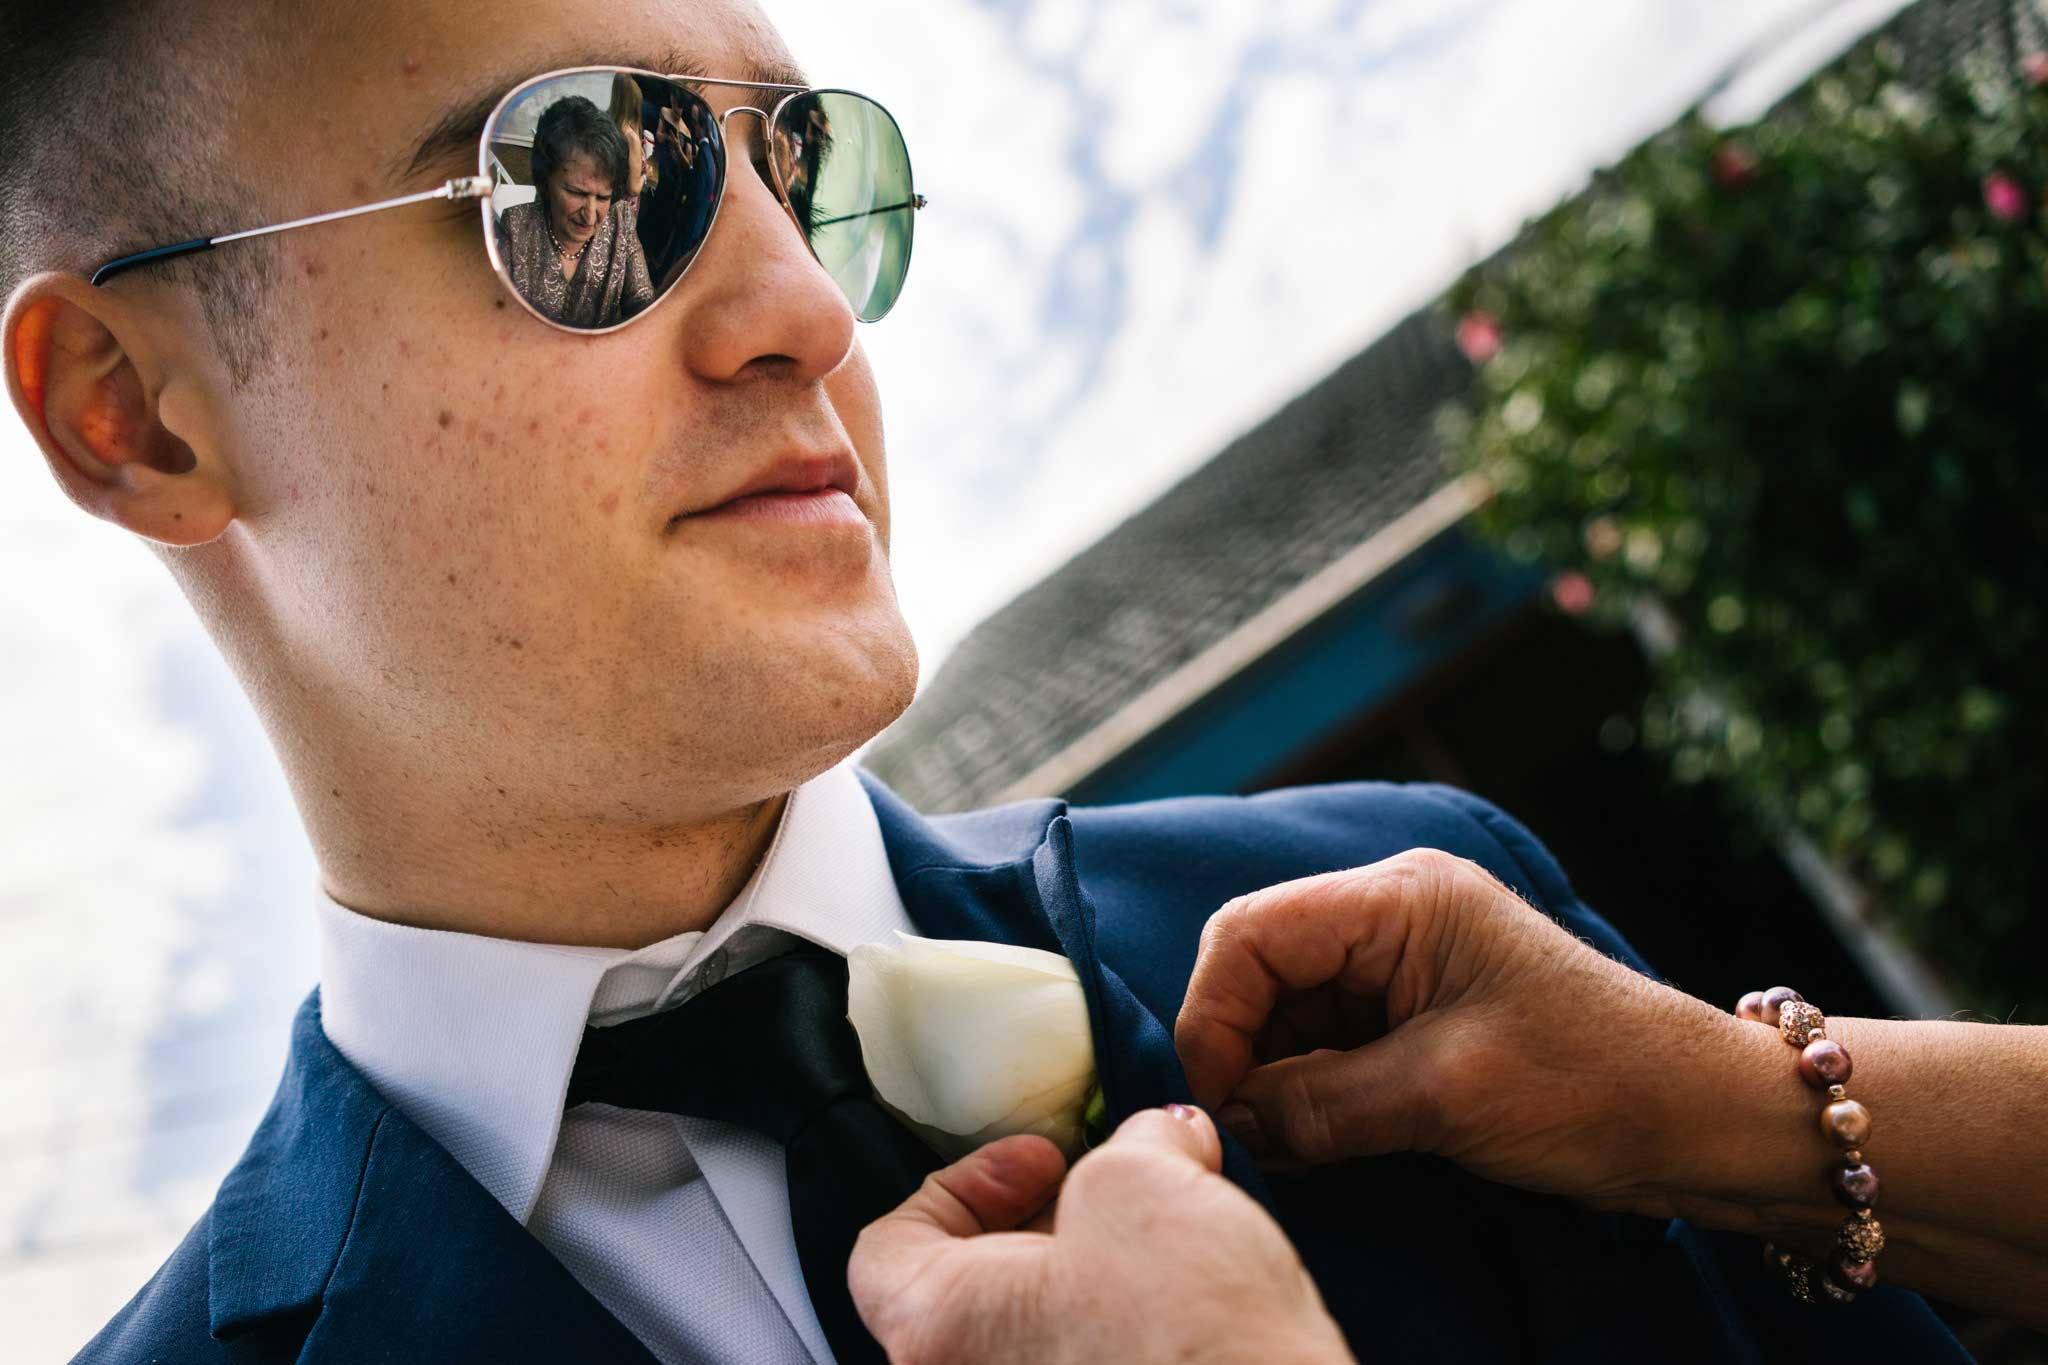 Reflection of grandmother in groomsman's sunglasses as she pins on buttonhole